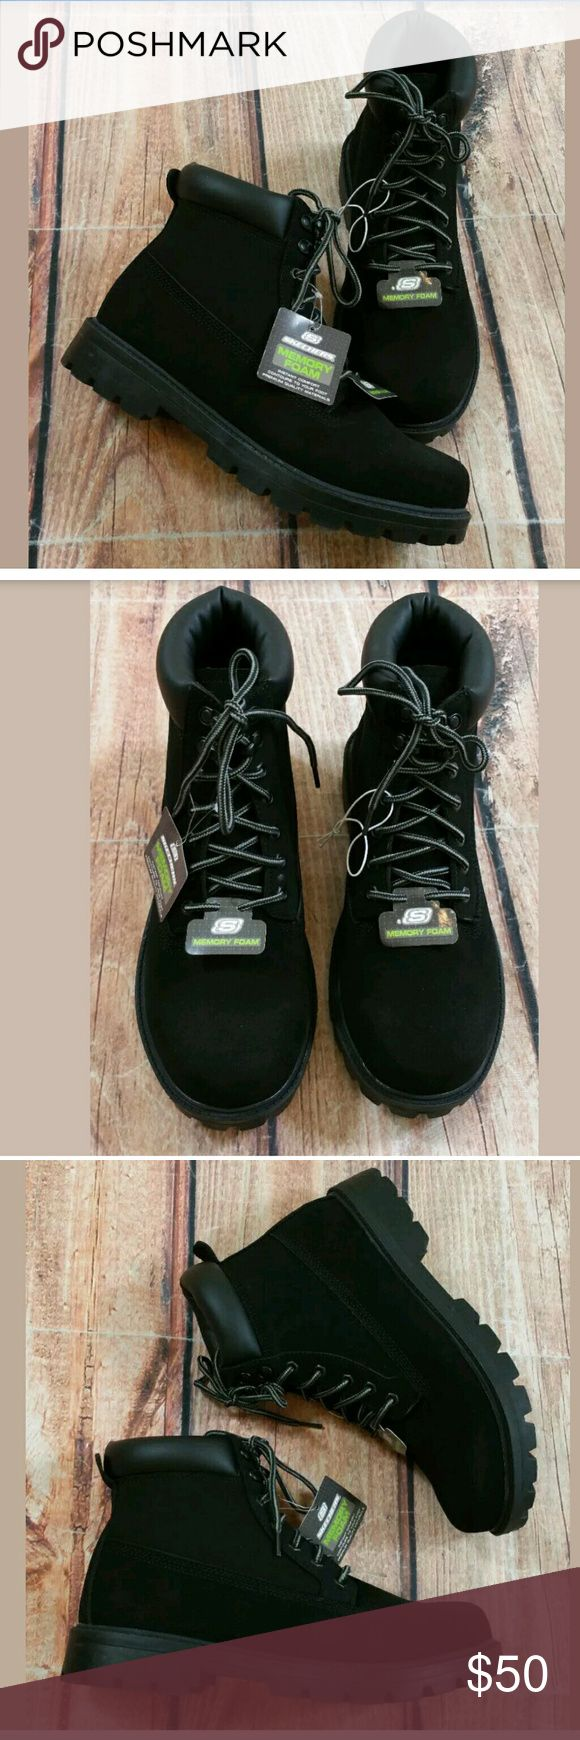 Skechers Lace Up Ankle Memory Foam Boots Mens 8.5 Skechers Lace Up Ankle Memory Foam Boots Mens Size 8.5 Black NEW Condition:  Brand New without Box Skechers Shoes Boots